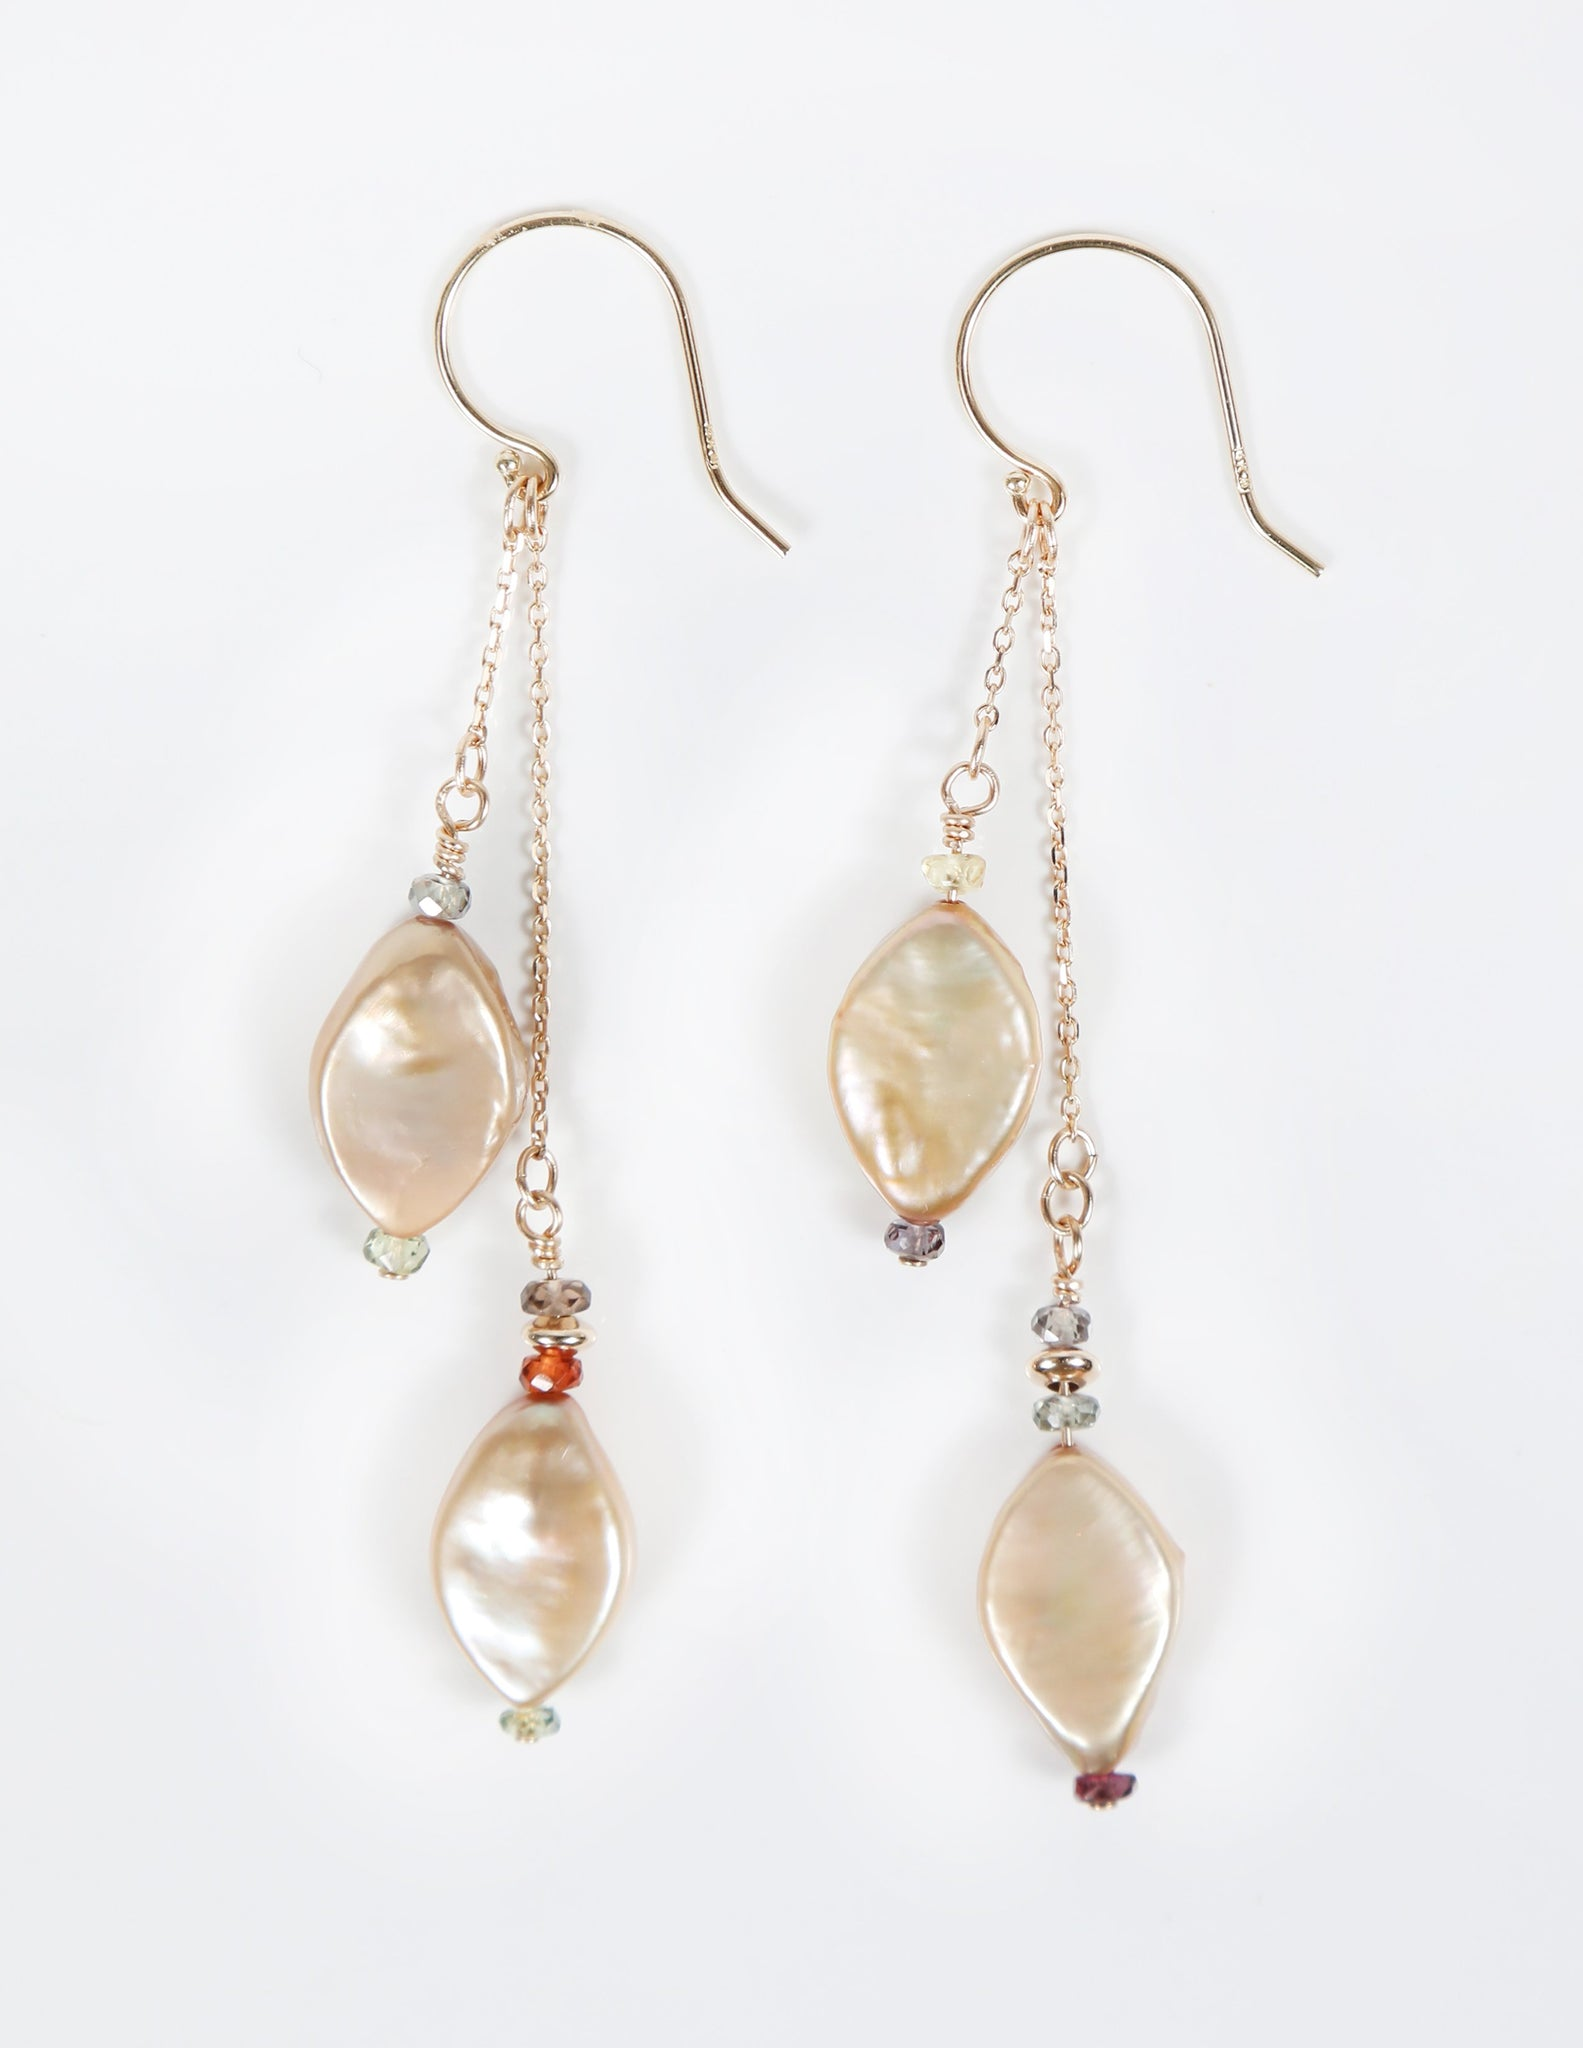 White Orchid Studios | Made in the USA | Handcrafted couture jewelry inspired by nature. |  Champagne, marquis freshwater pearls enhanced with microfaceted gems, 14kt gold chain and earwires. $130